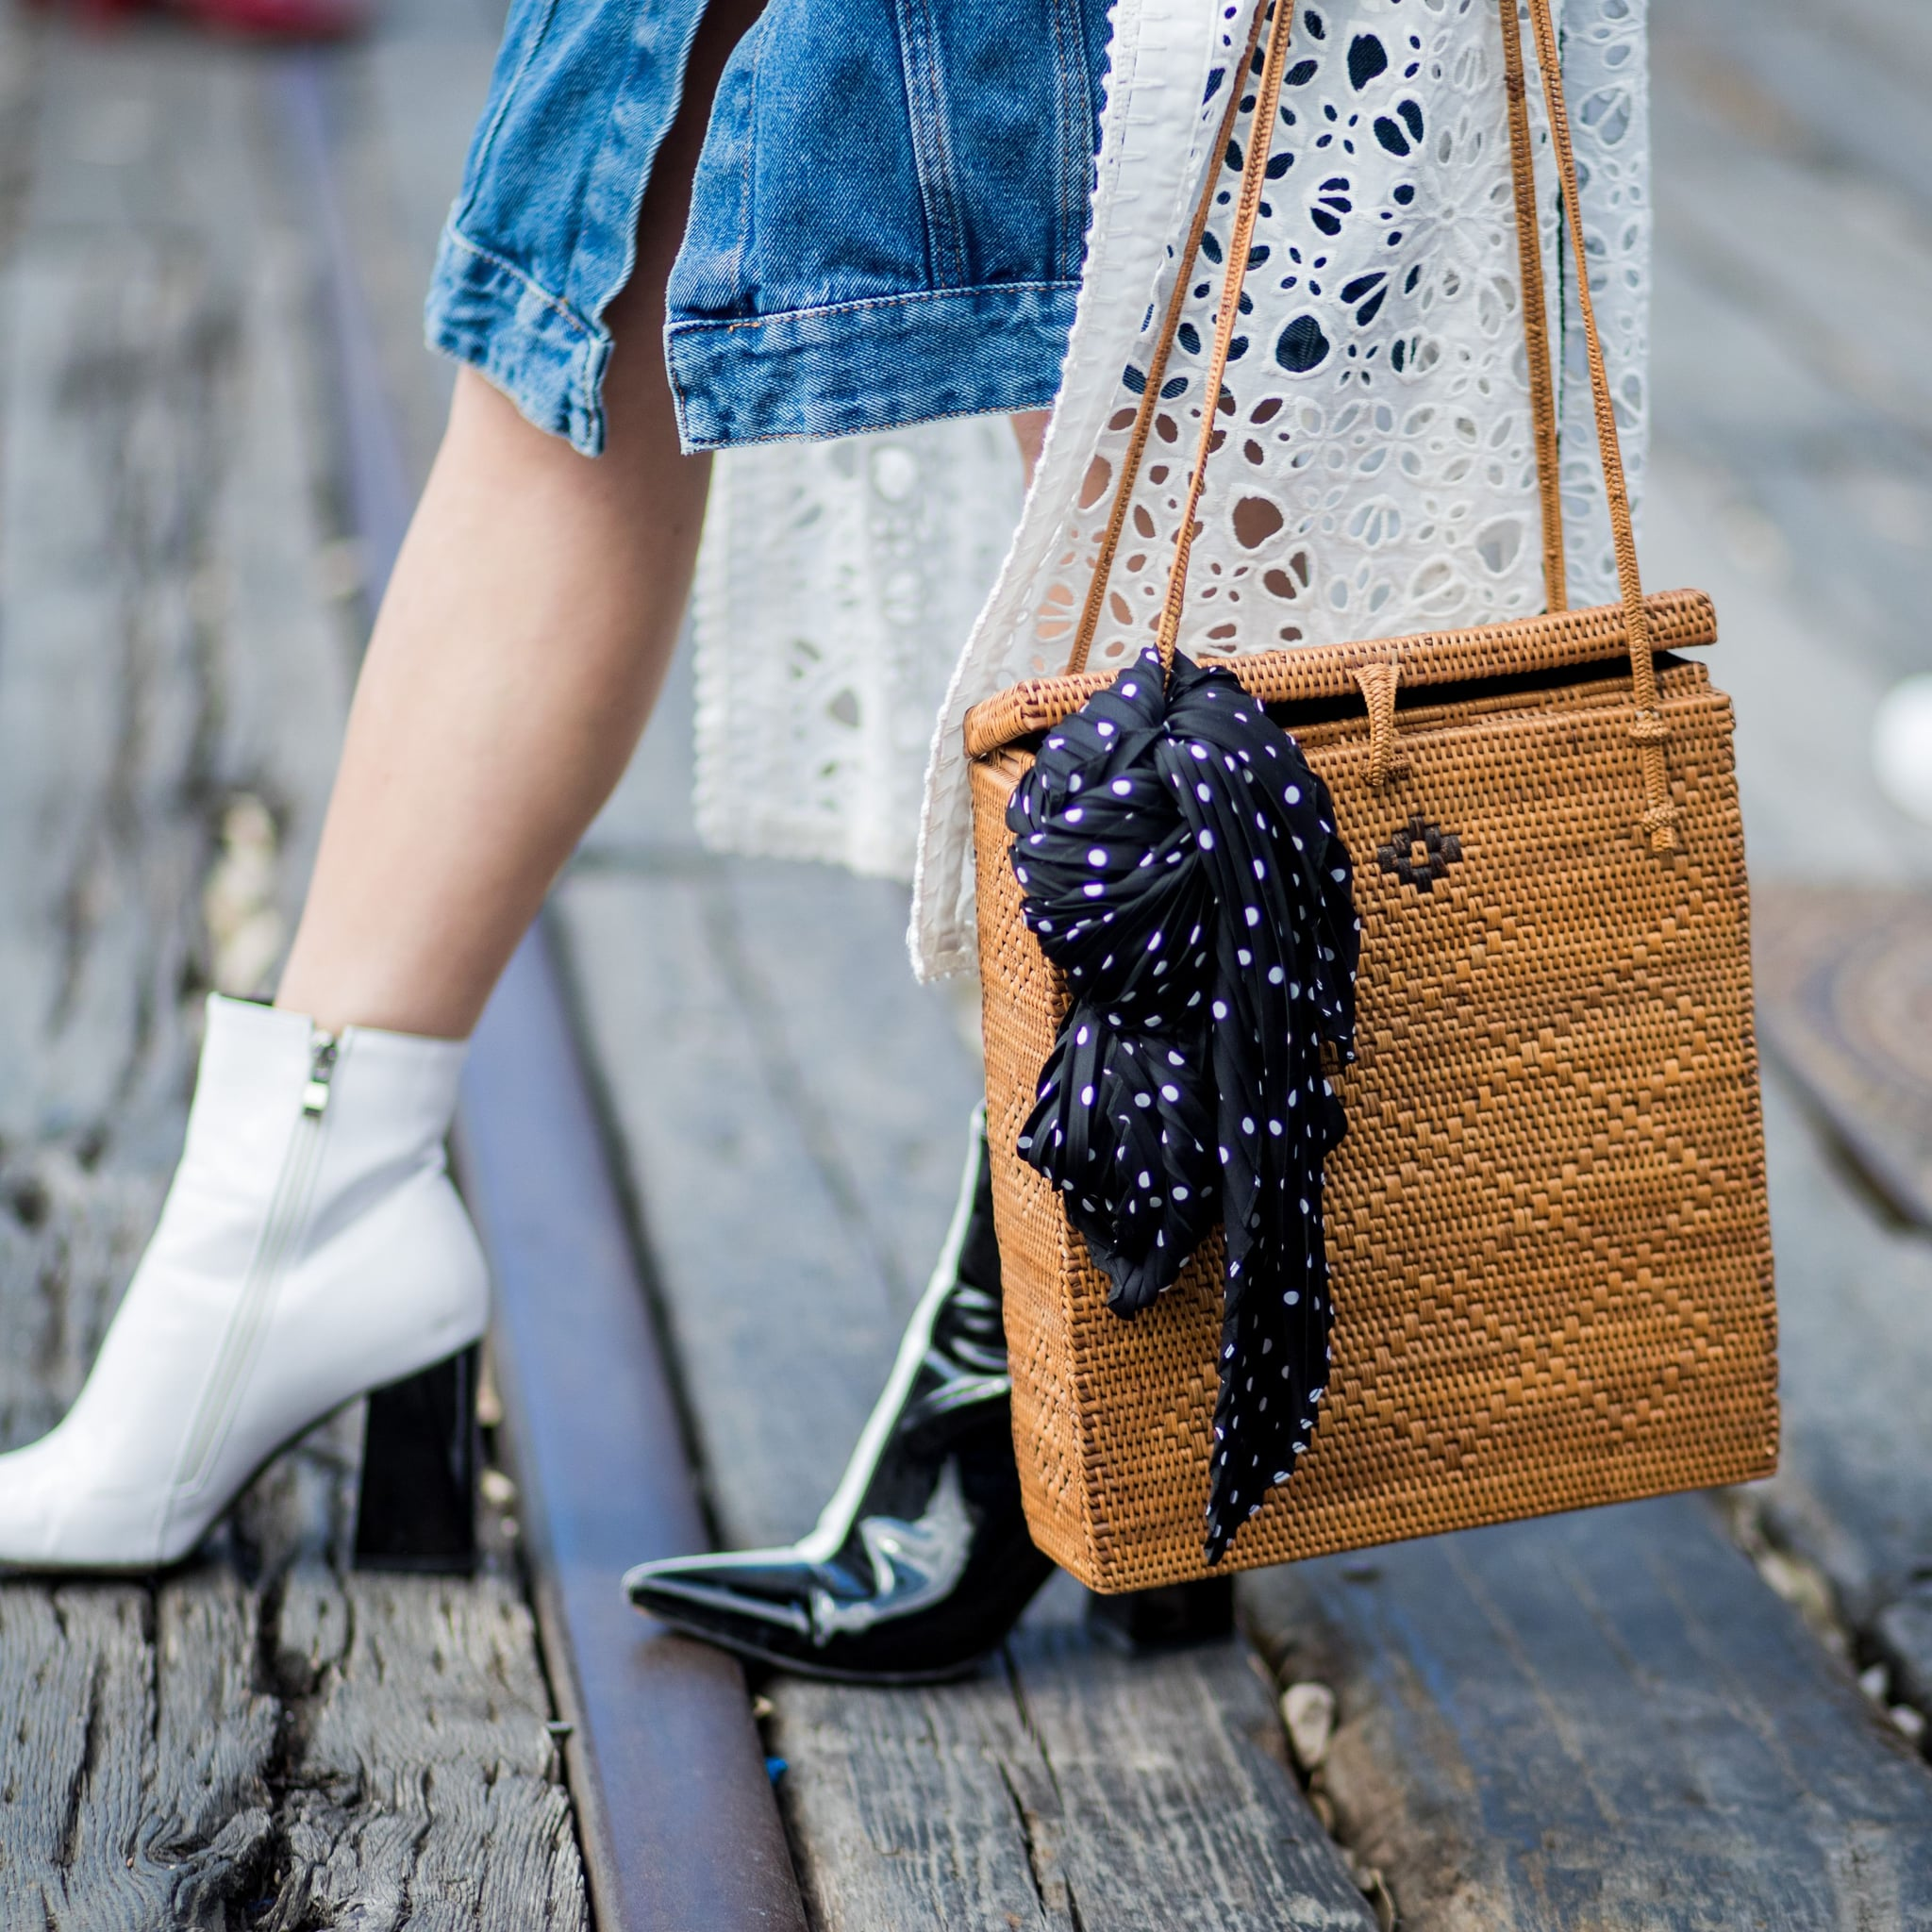 21 Relaxed Outfit Ideas With Straw Bags 21 Relaxed Outfit Ideas With Straw Bags new images